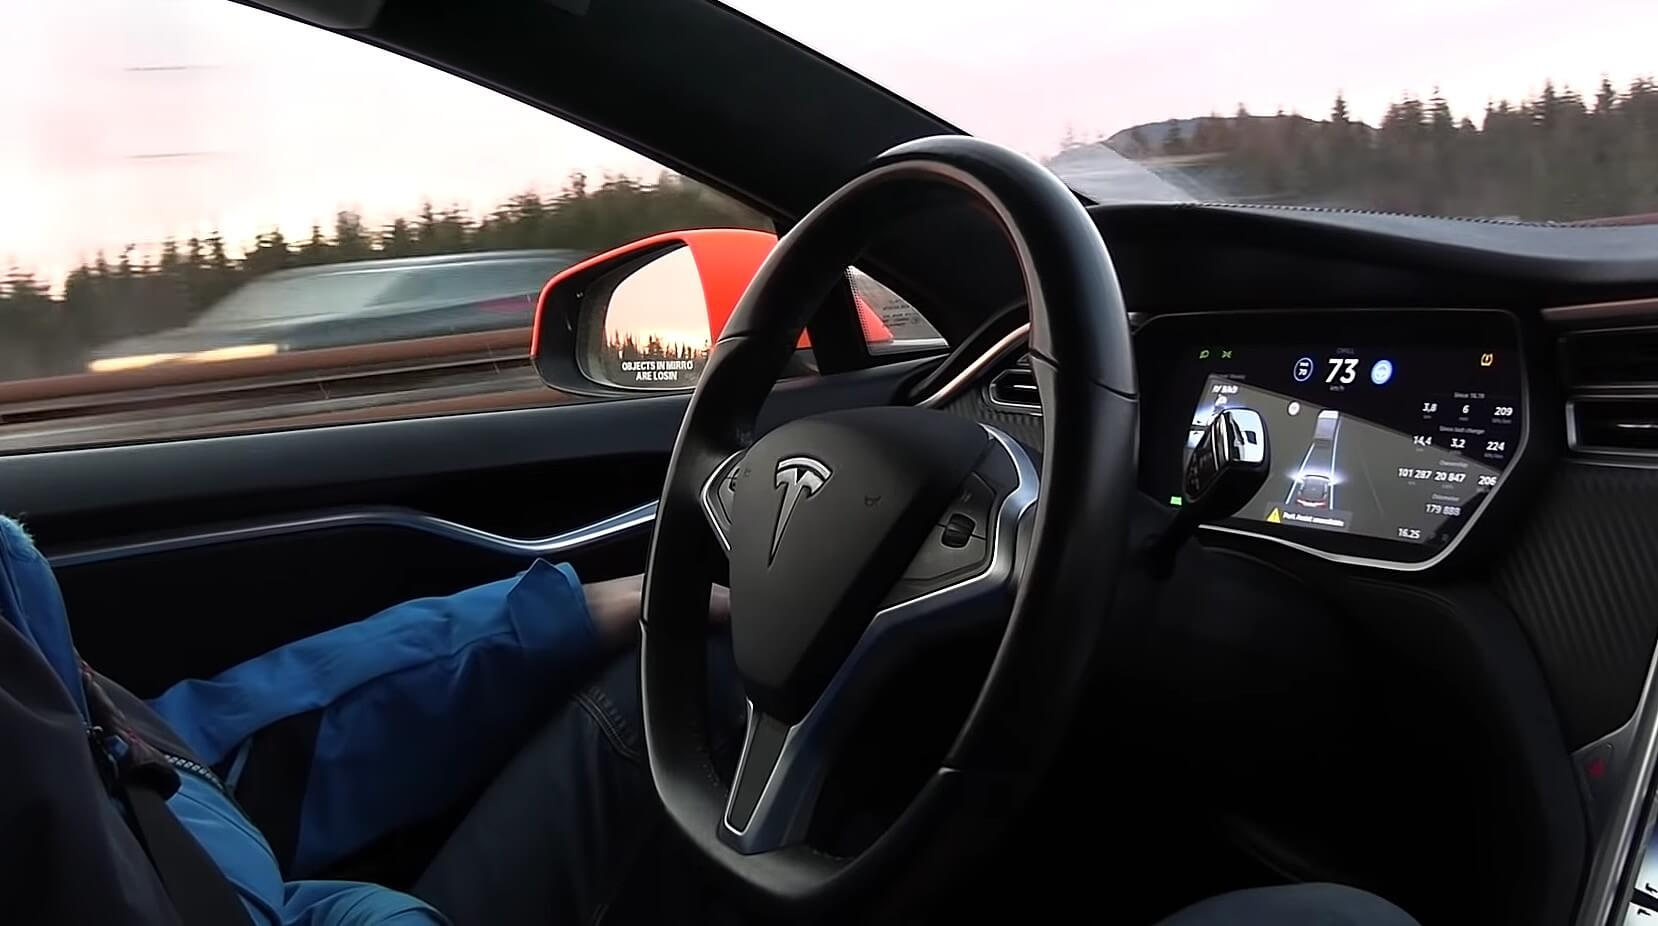 Tesla remotely disabled the autopilot on the Model S after the resale of the car